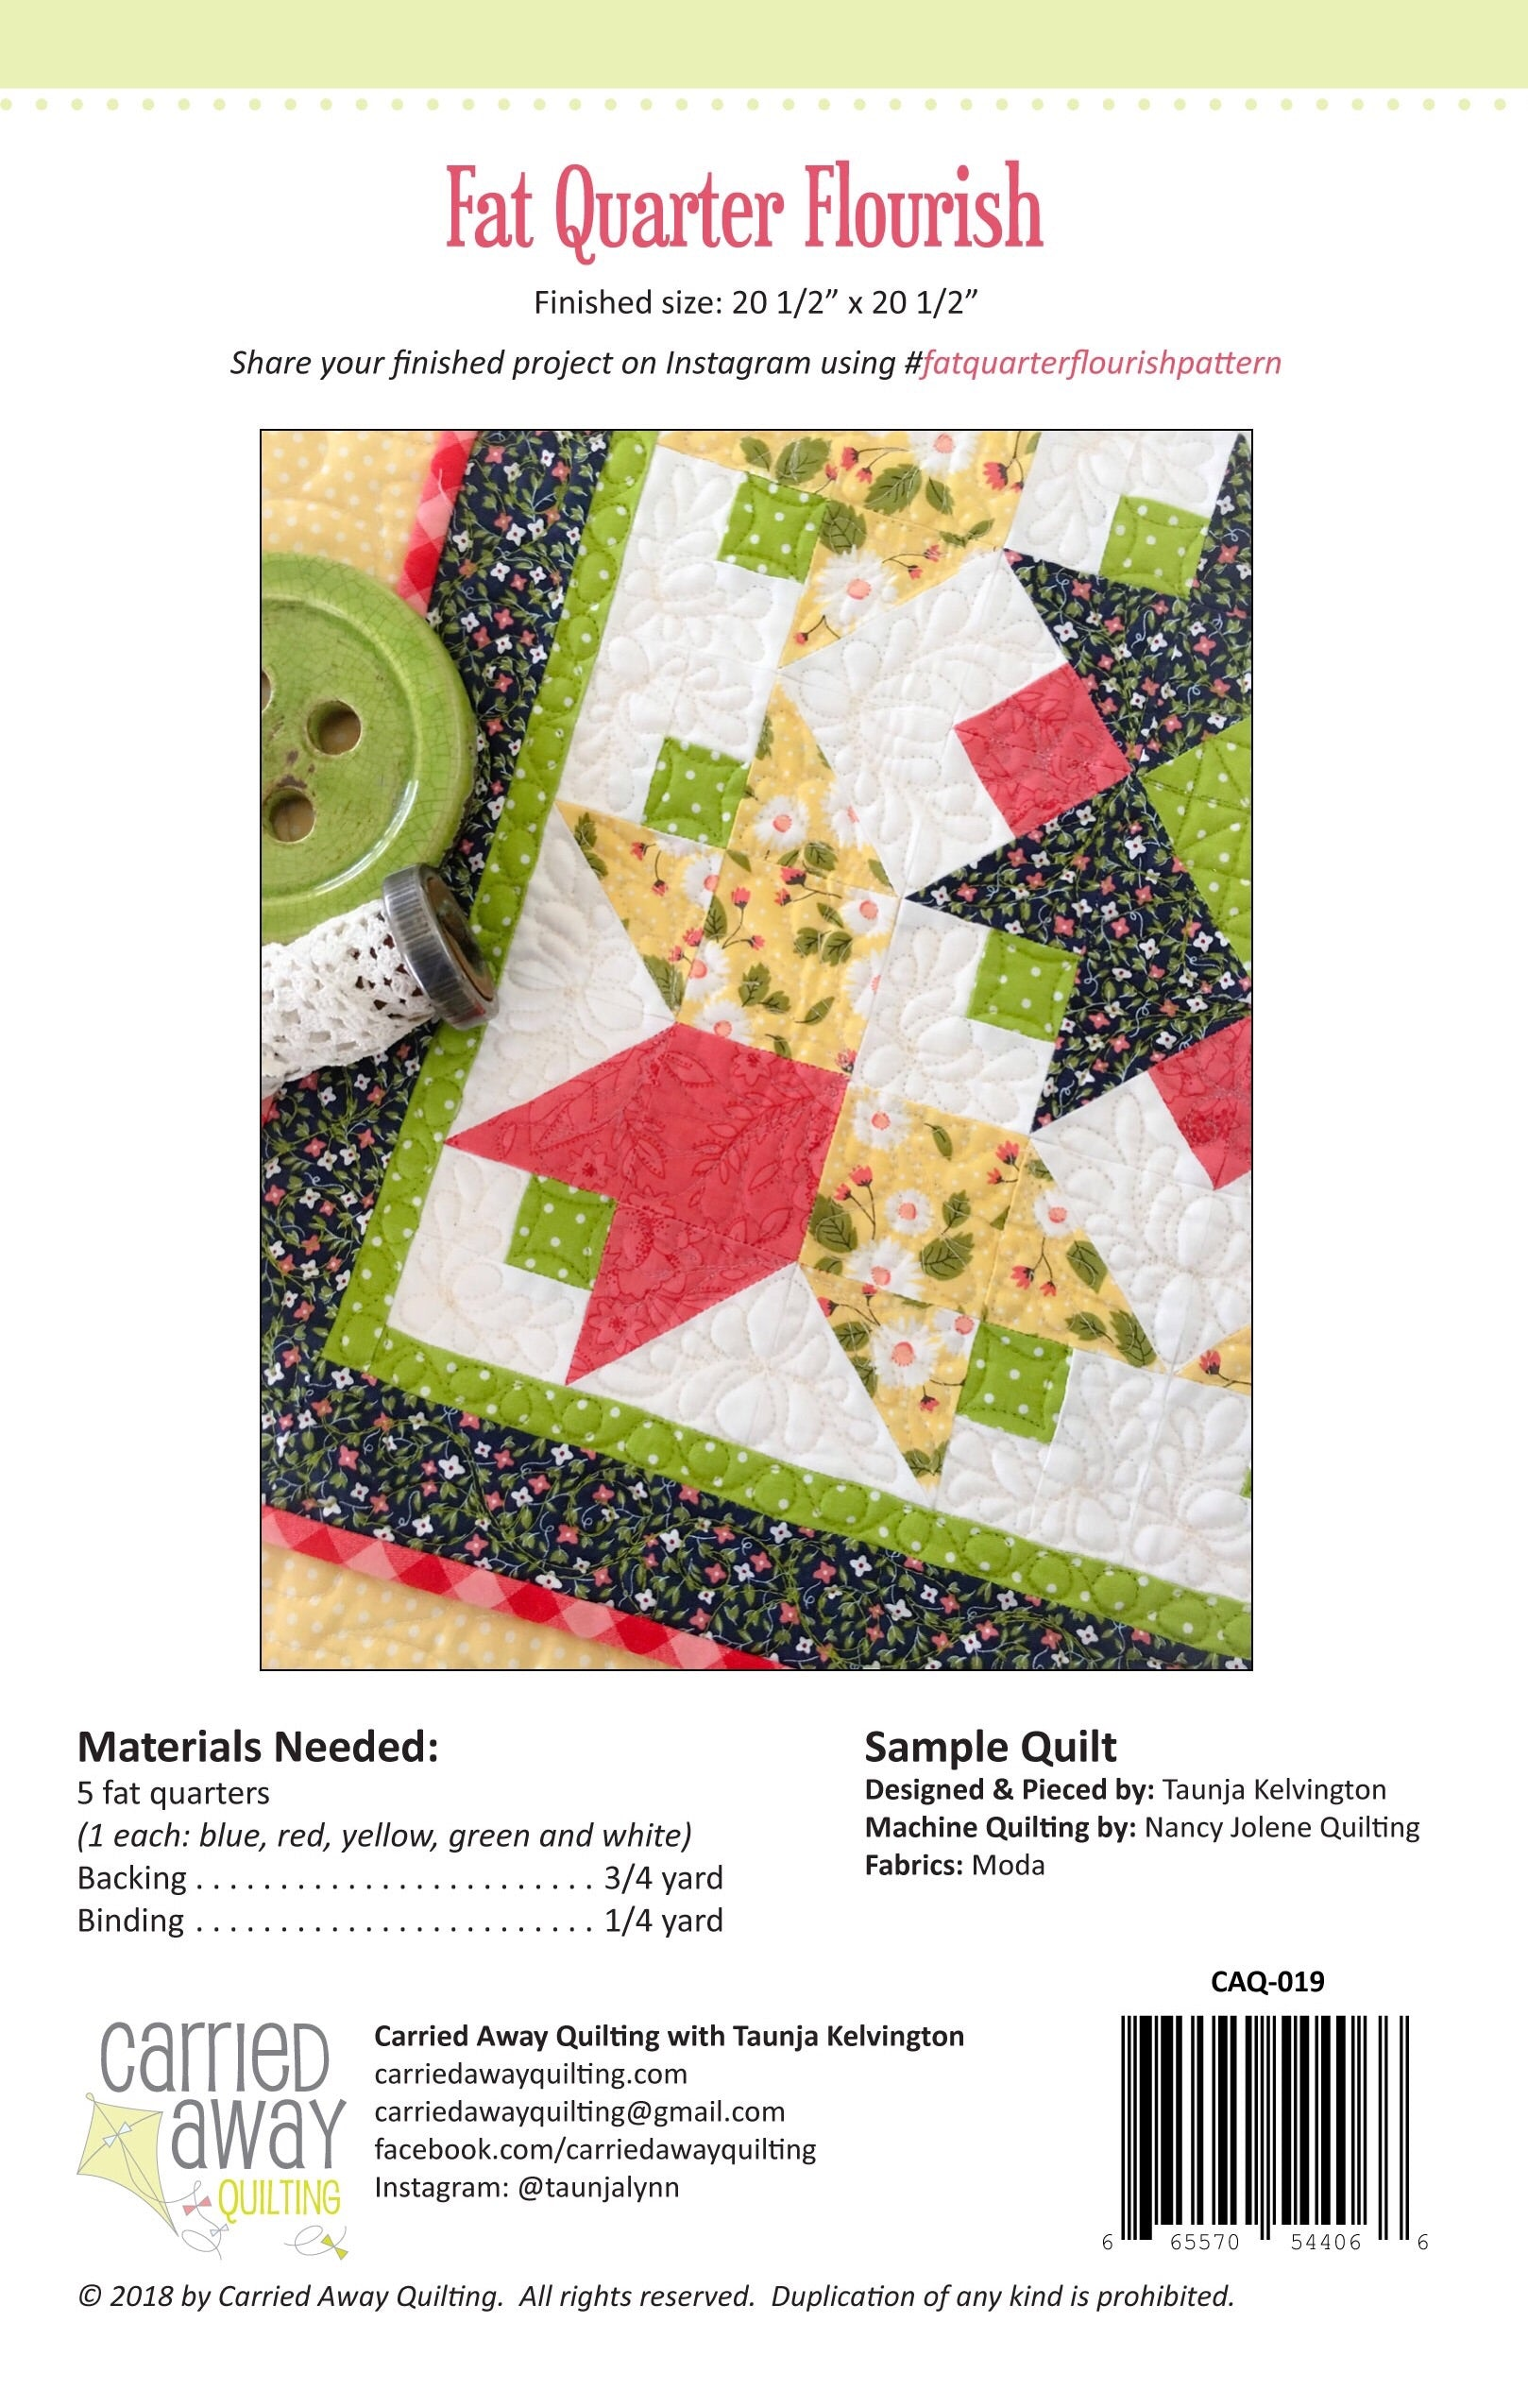 Fat Quarter Flourish Mini Quilt Pattern By Taunja Kelvington Of